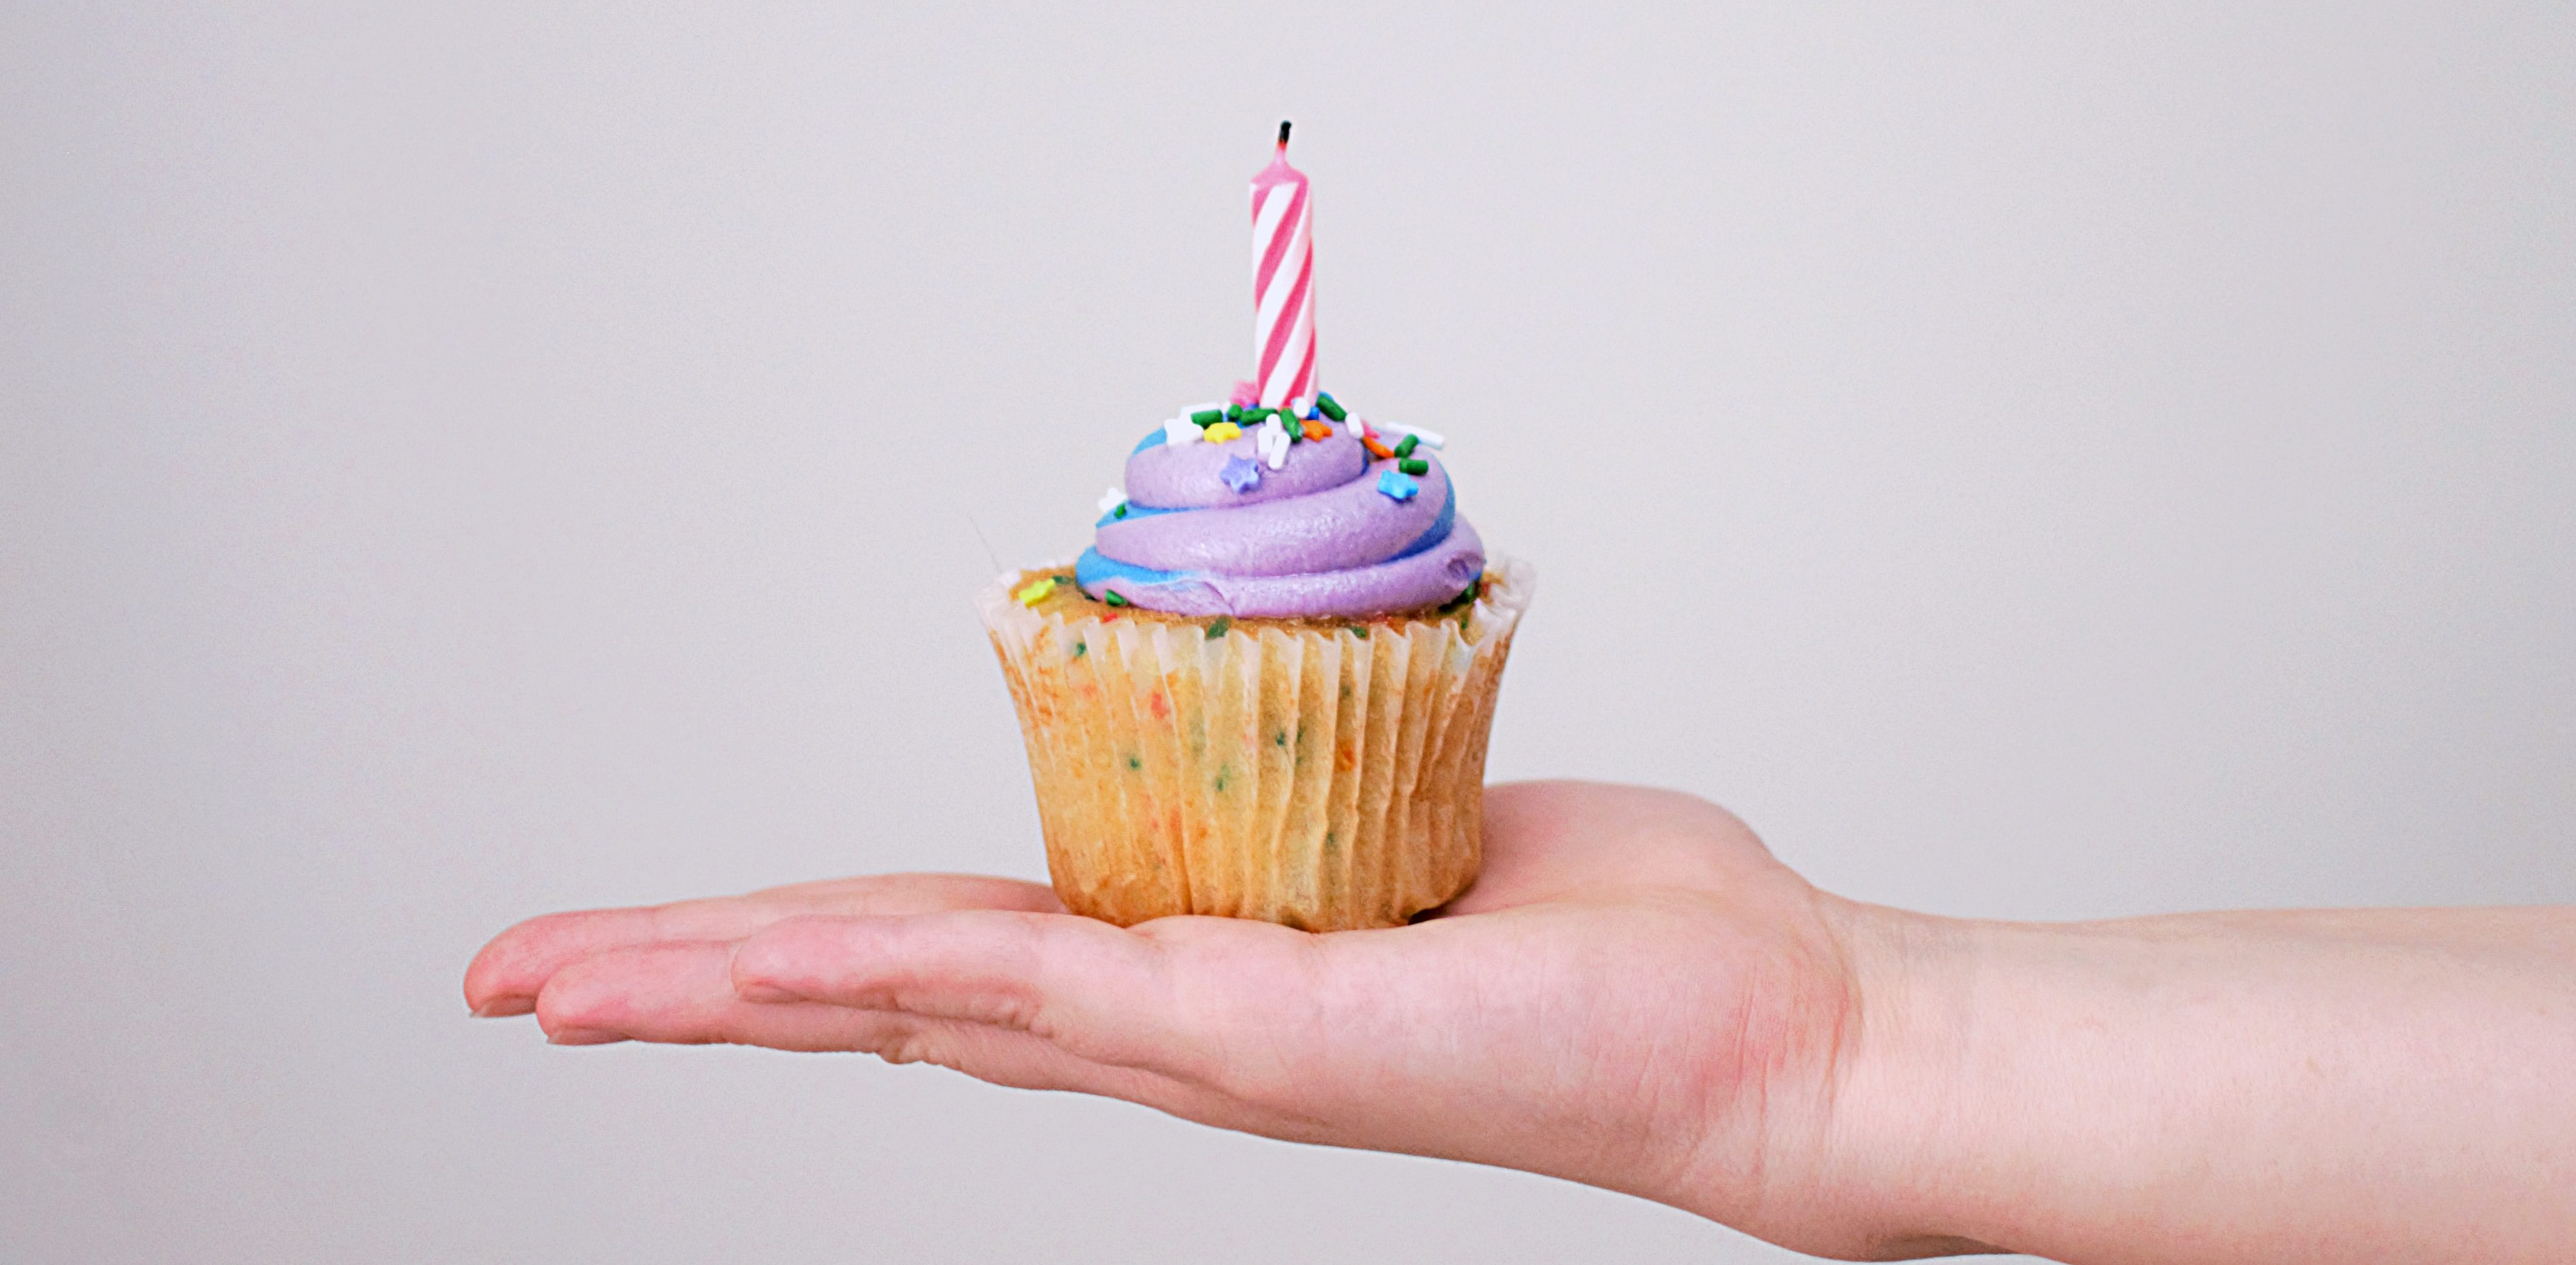 12 Things To Do On Your 21st Birthday